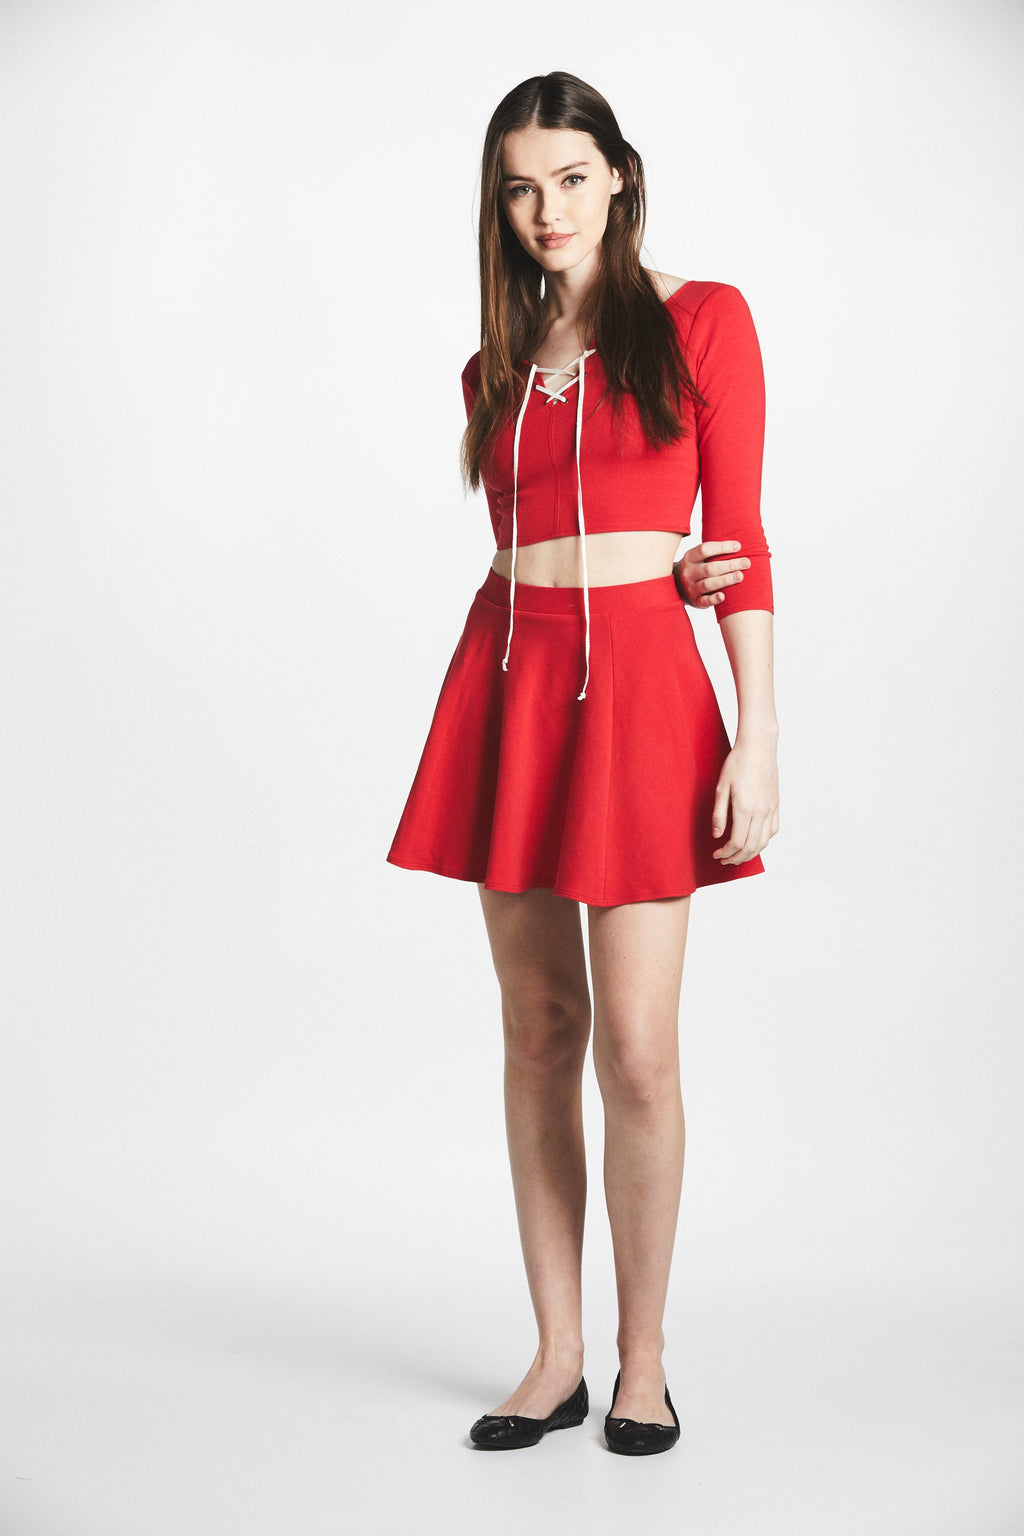 Manara Lace-Up Two Piece (Red) - L'école Des Femmes